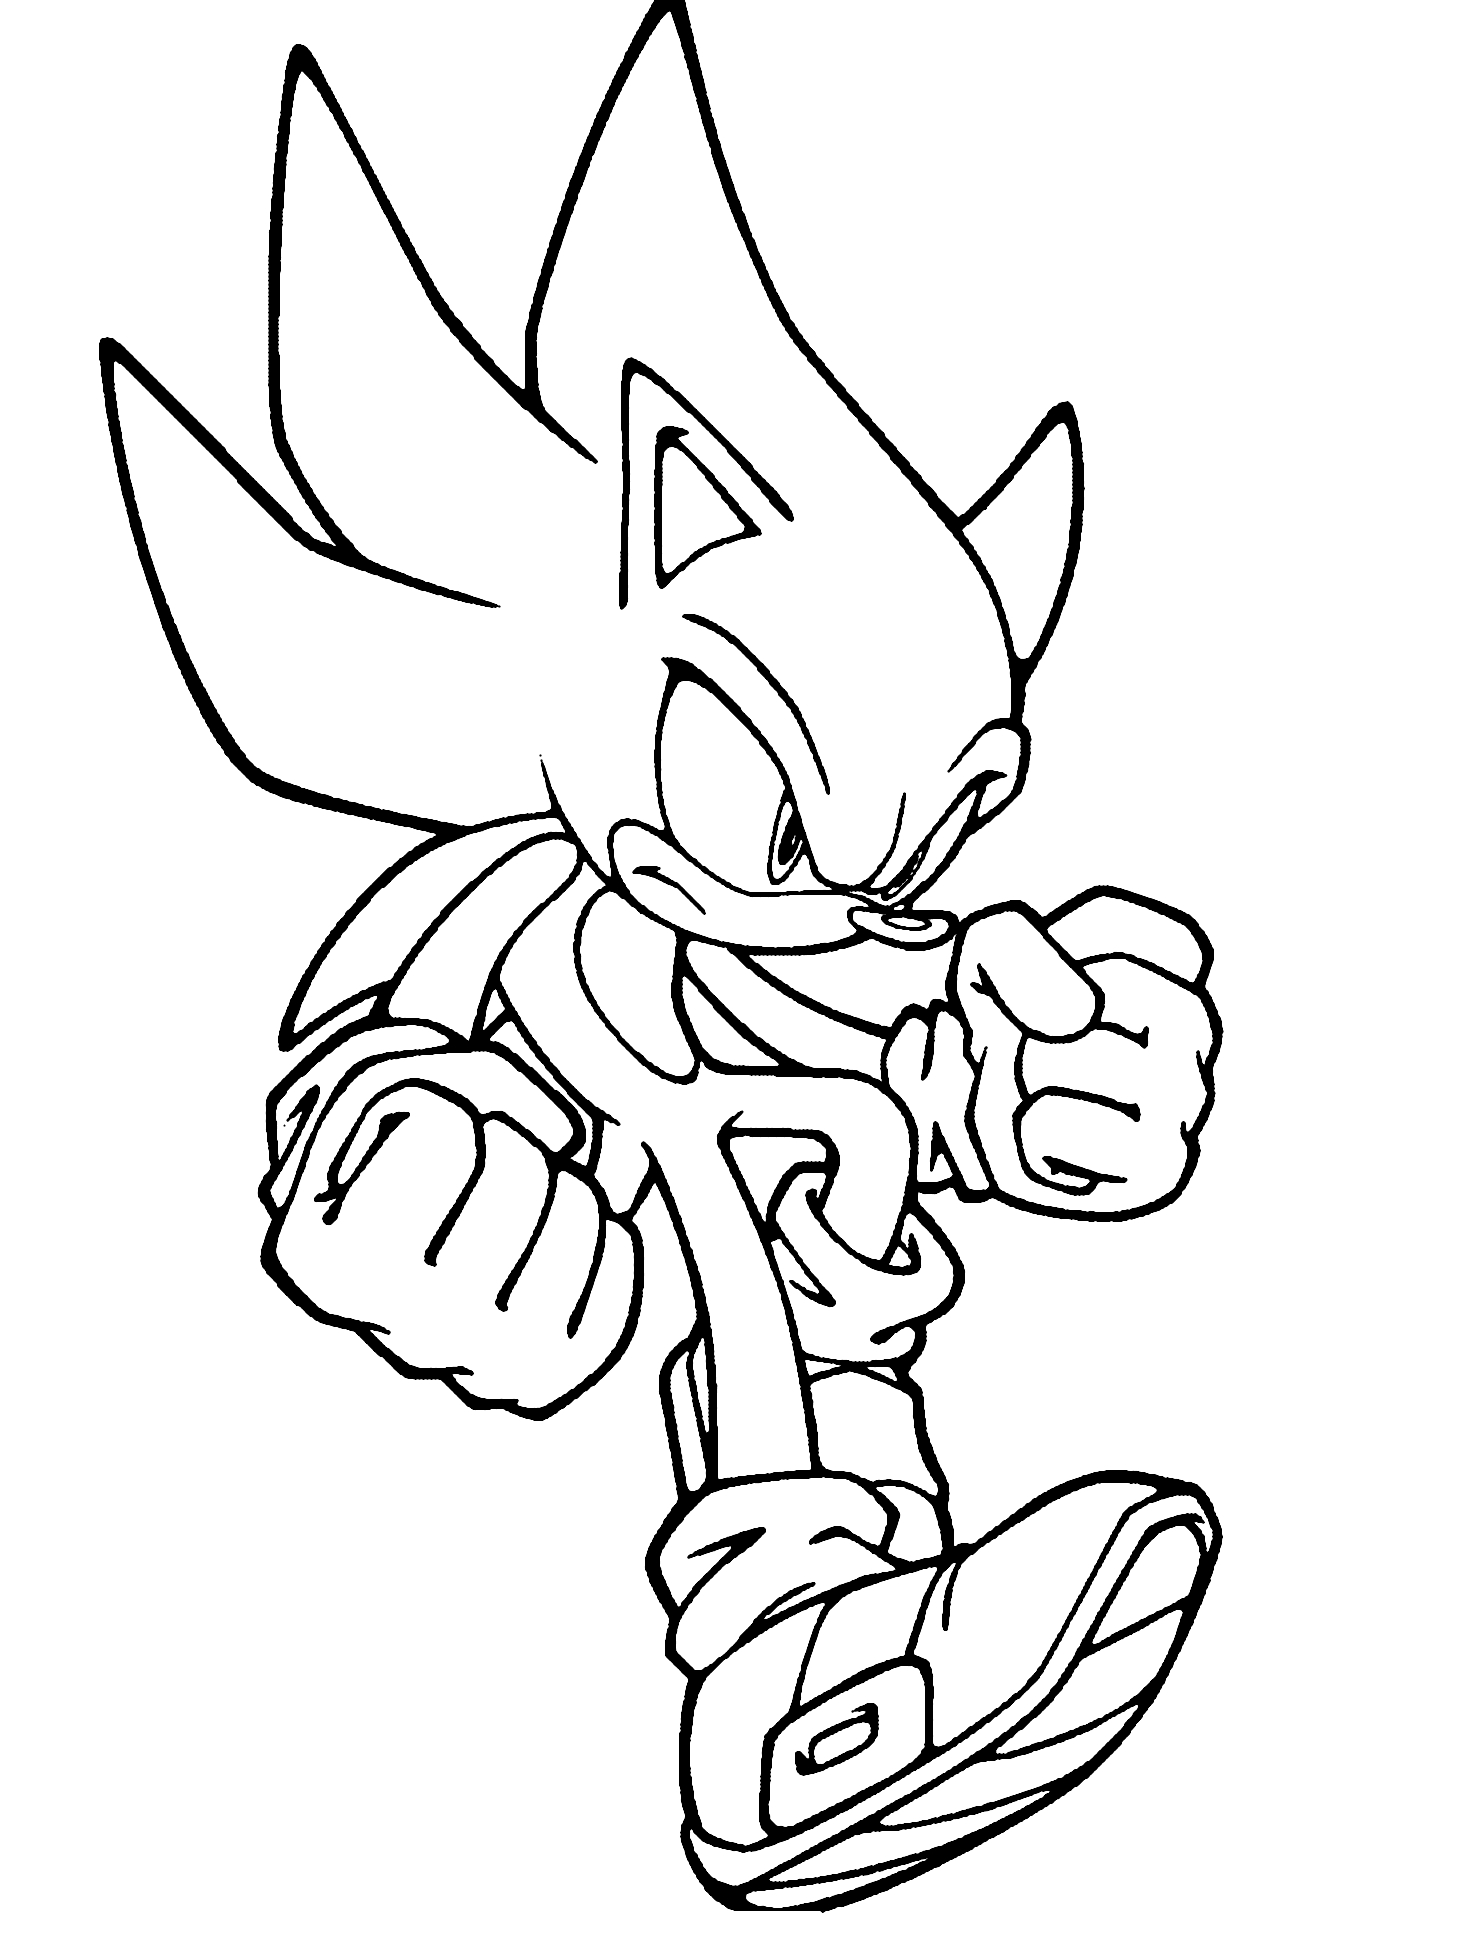 1457x1947 Coloring Pages Sonic The Hedgehog Archives Best Of Super Inside